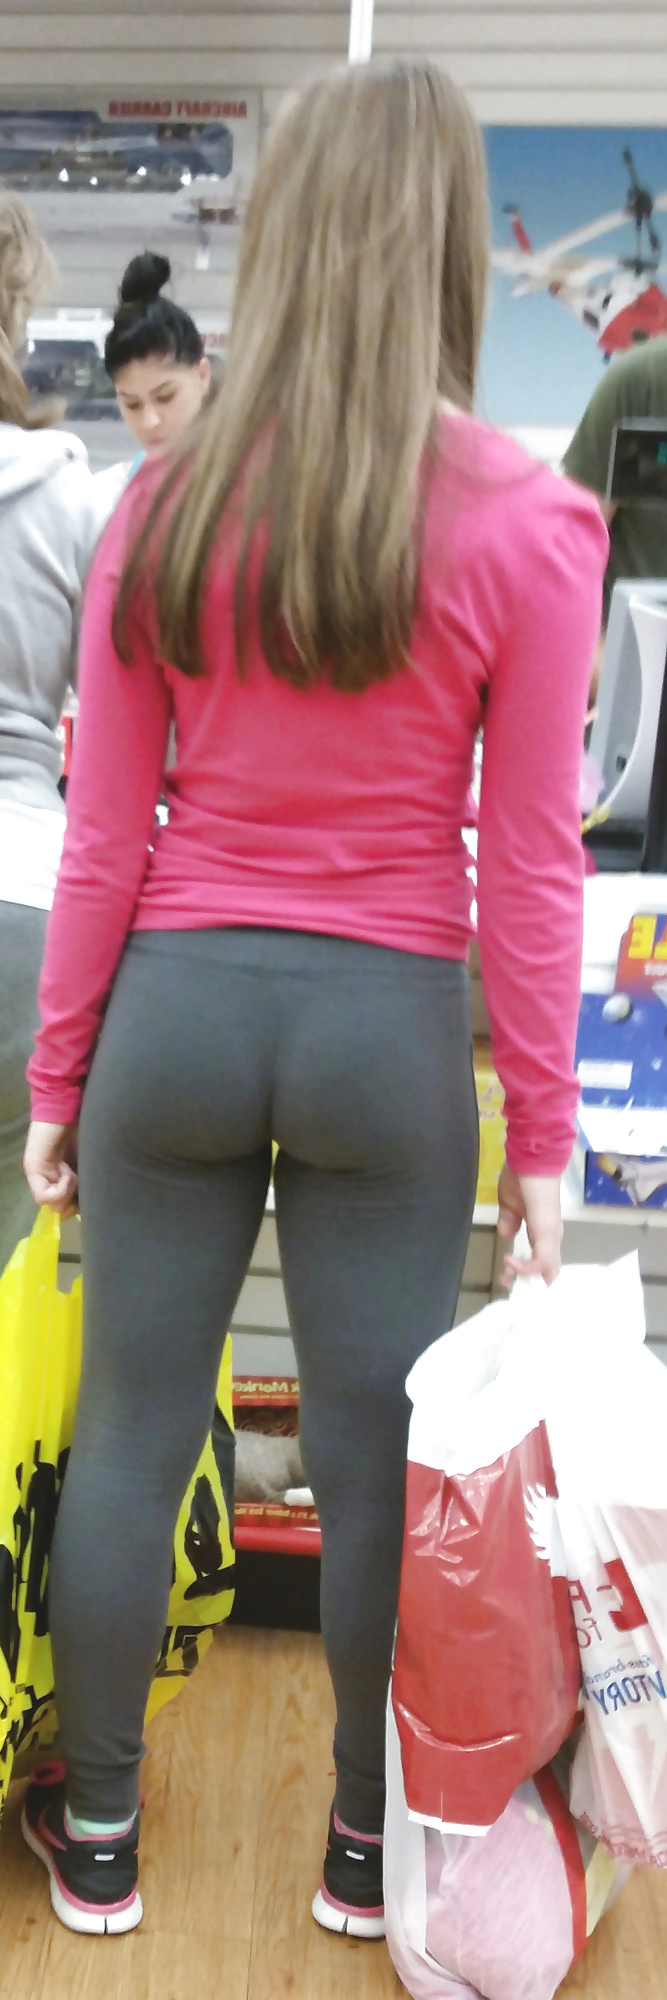 Amateur girls in spandex thong